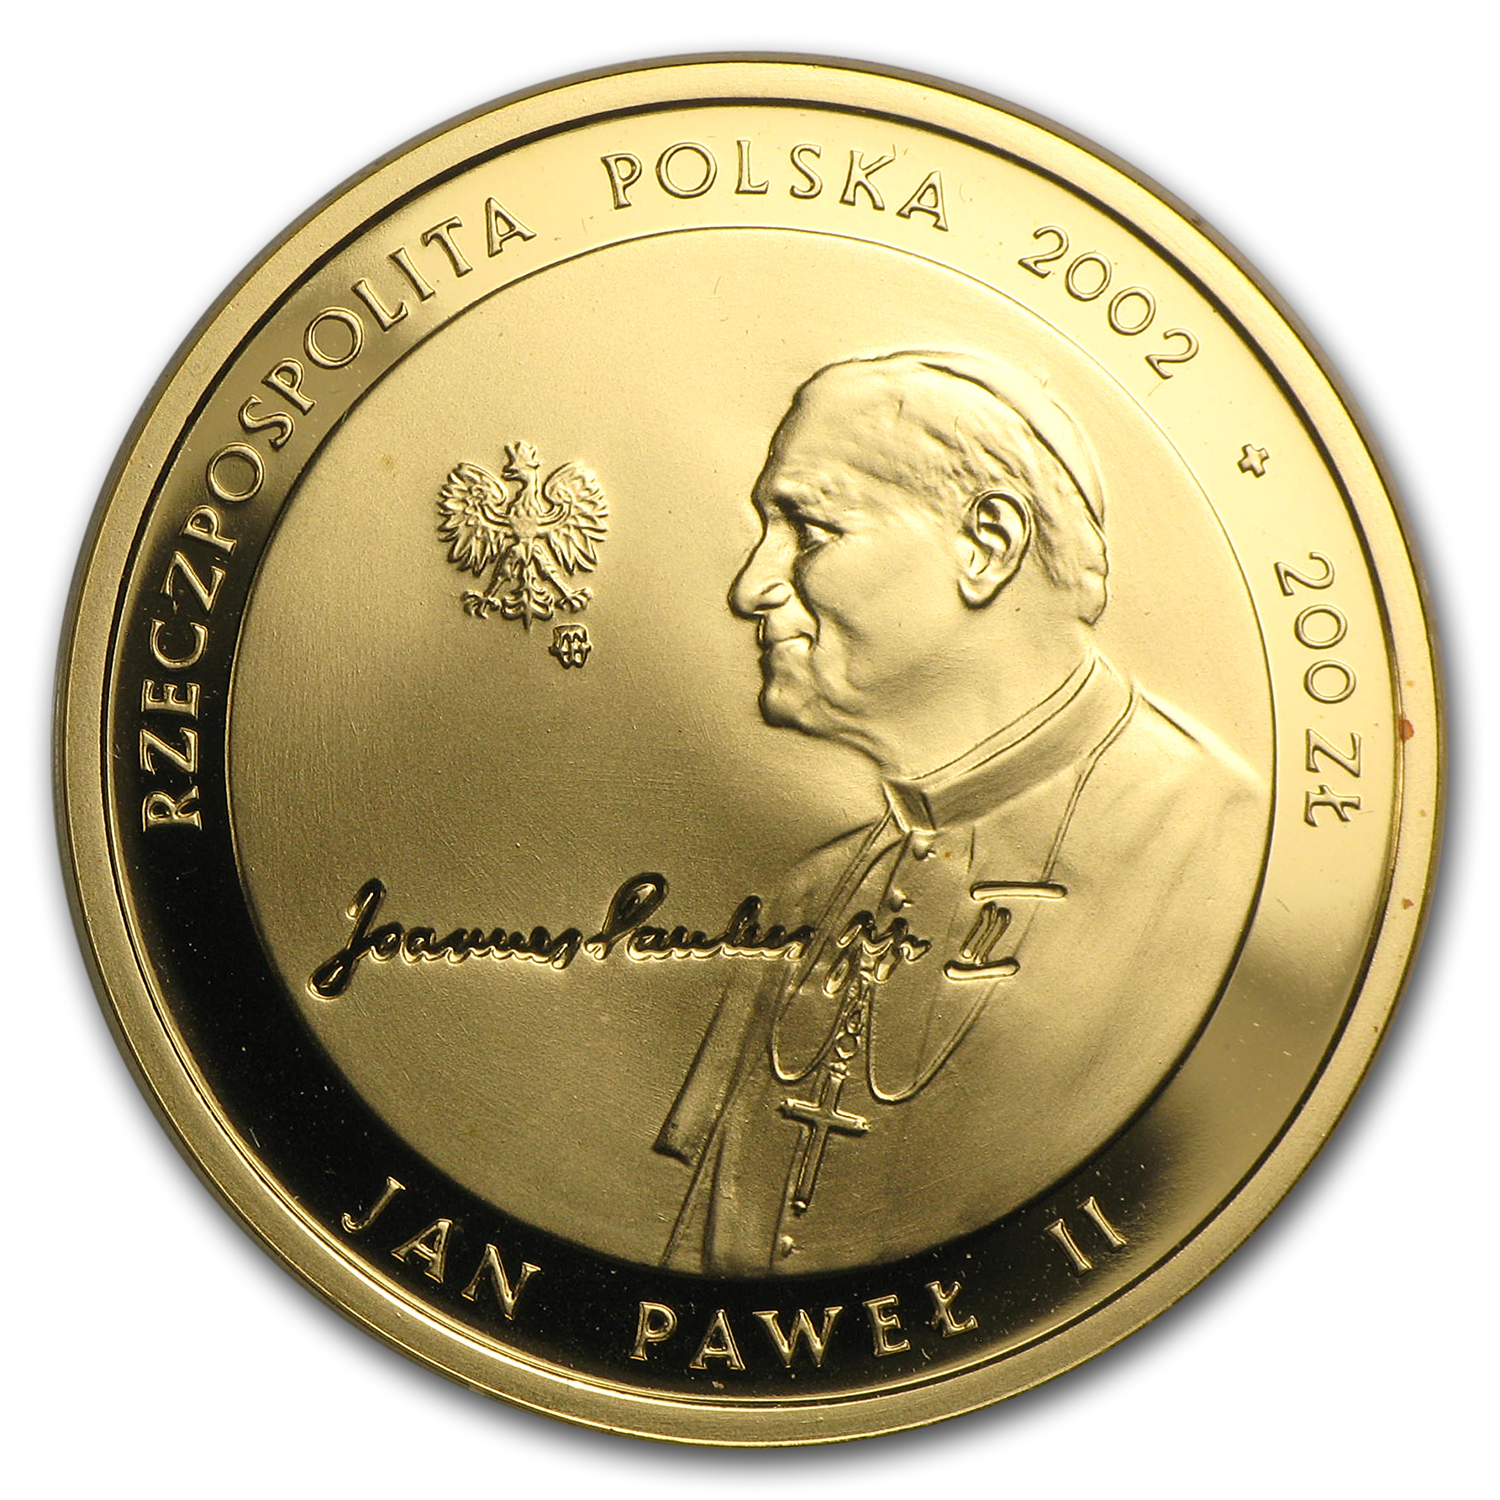 2002 Poland Gold Proof 200 Zlotych Pope John Paul II